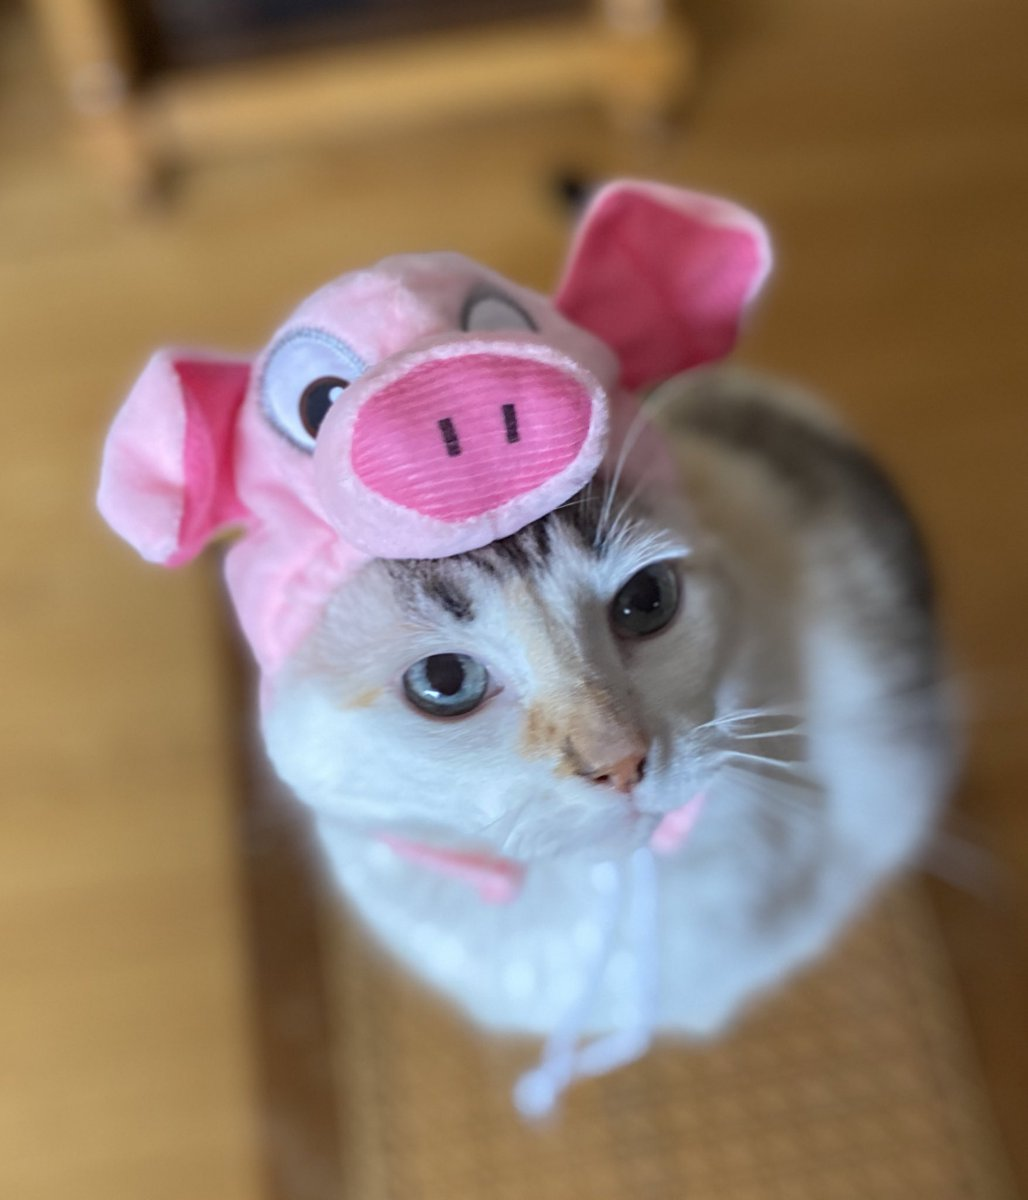 Pincy's #Halloween joke of the day: What do pigs dress up as on Halloween? Frankenswine. https://t.co/ABU2GR4o3Z